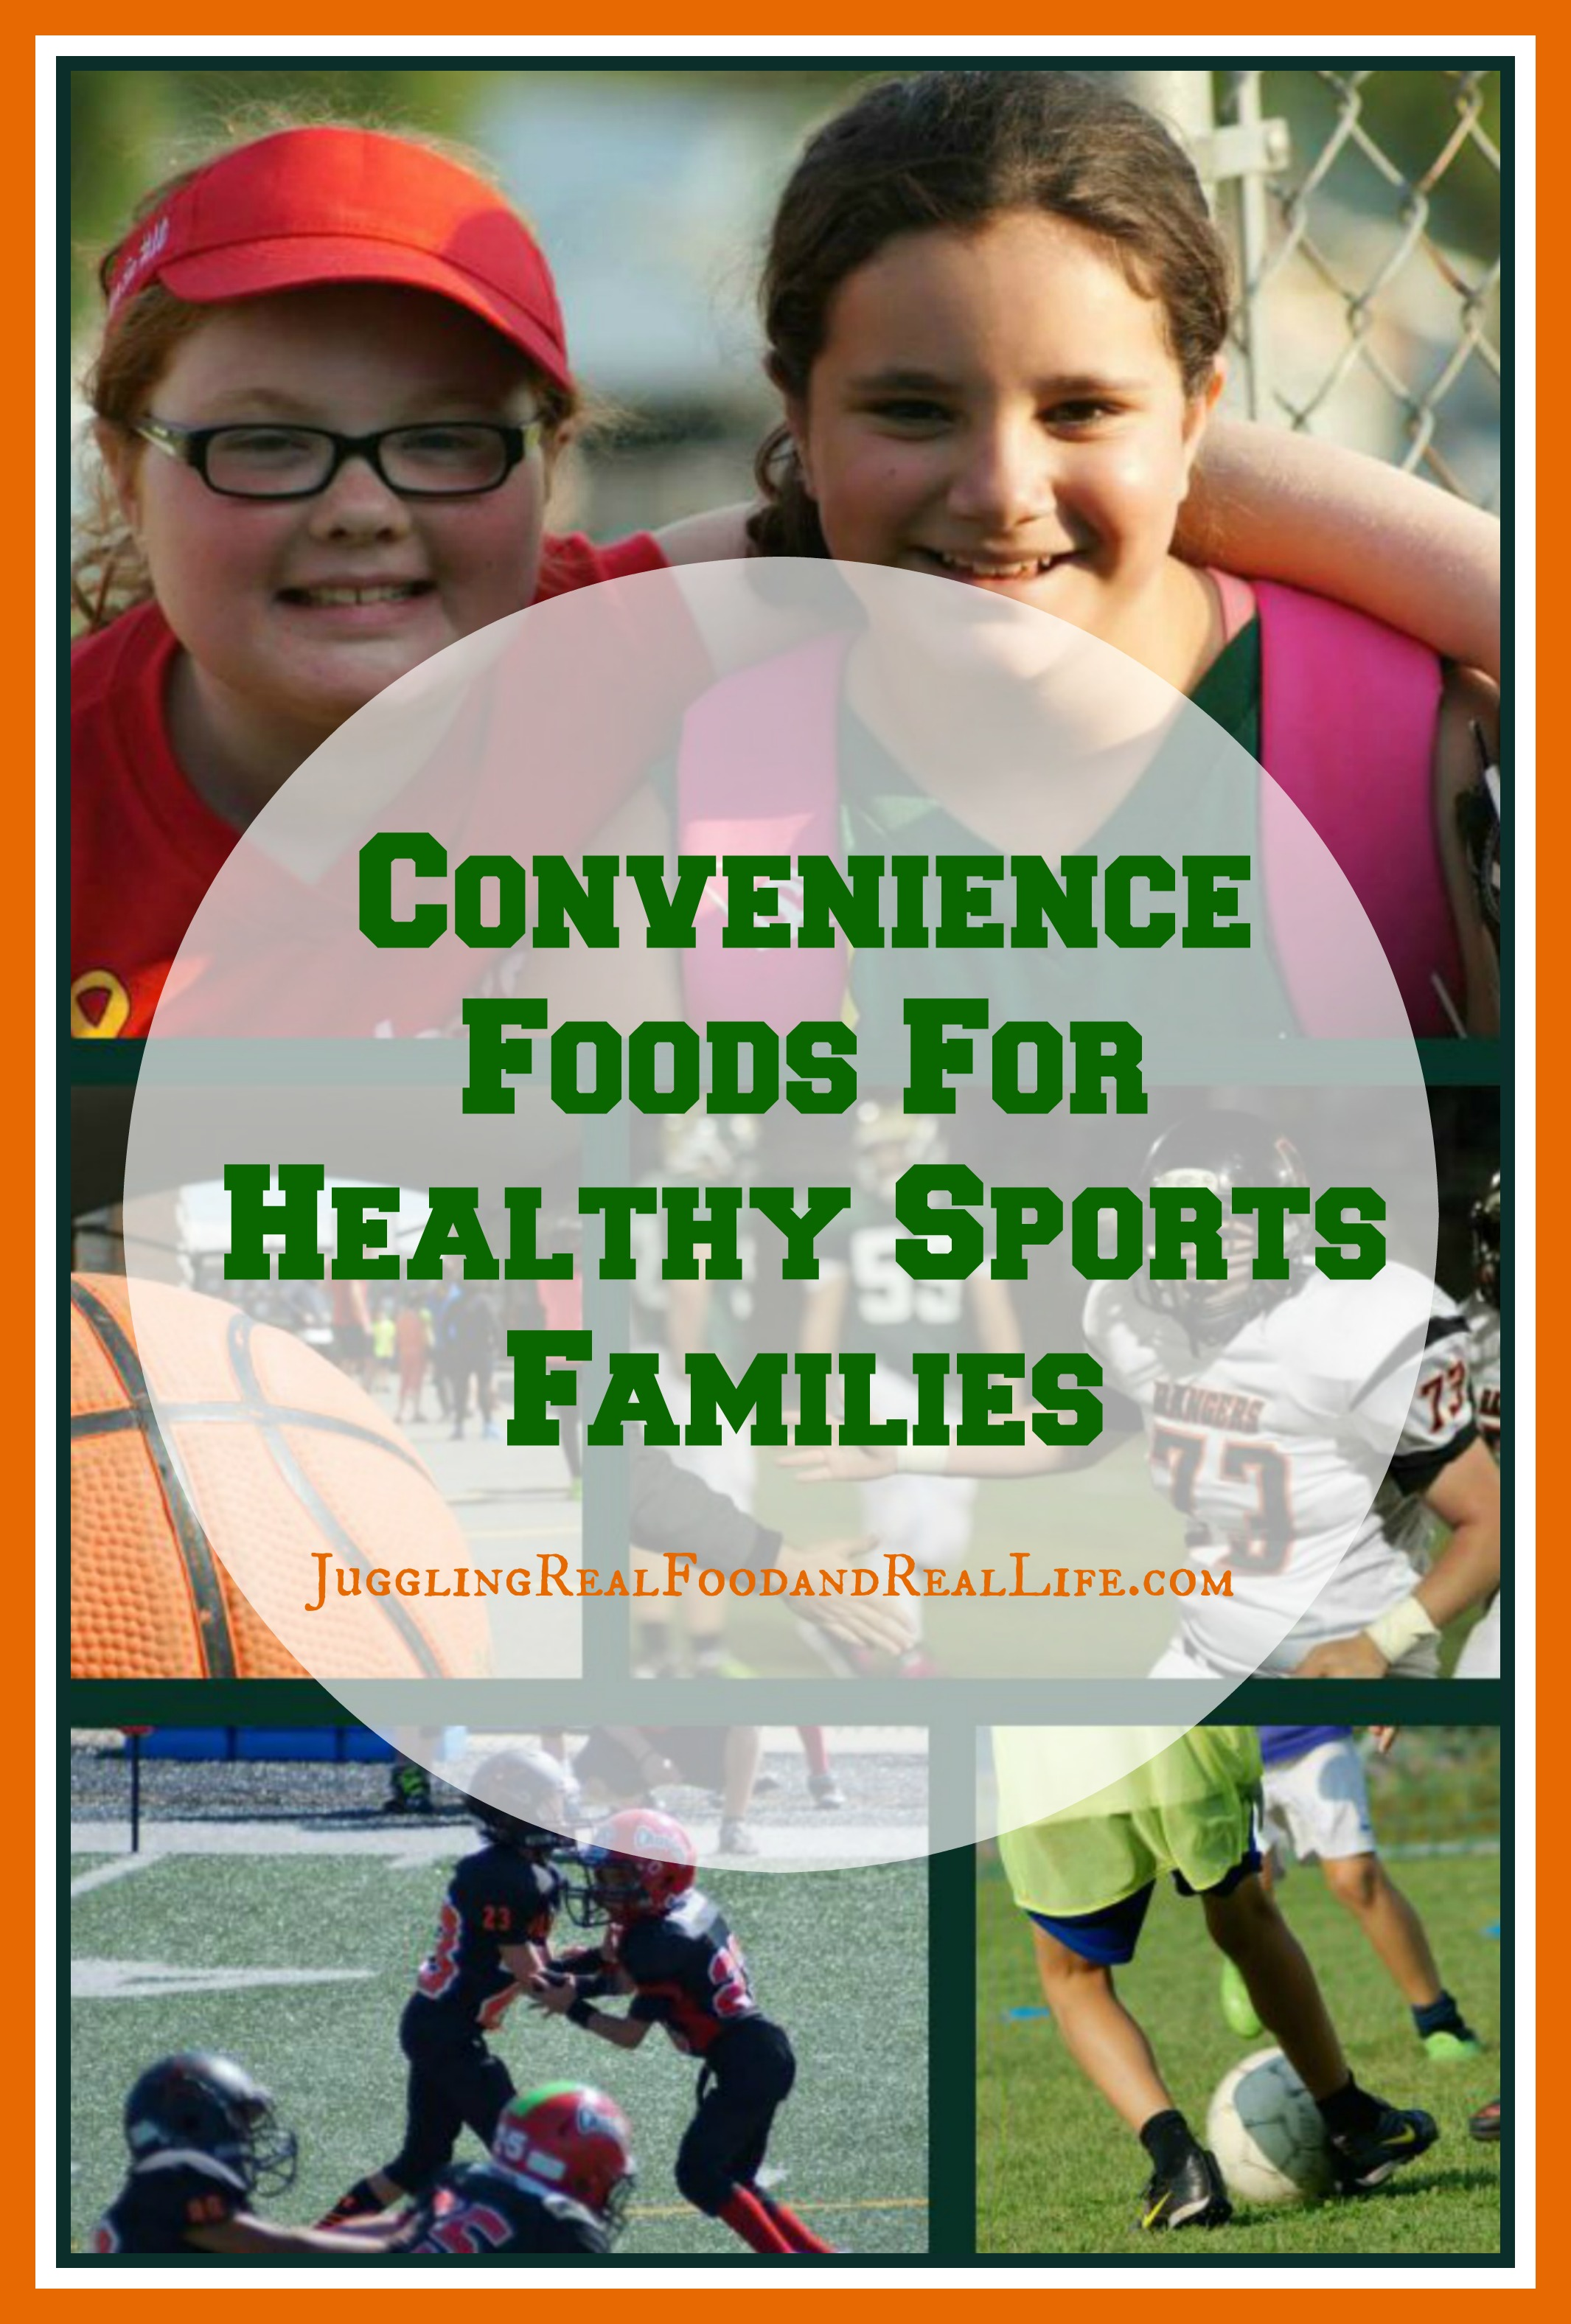 Convenience Foods For Healthy Sports Families